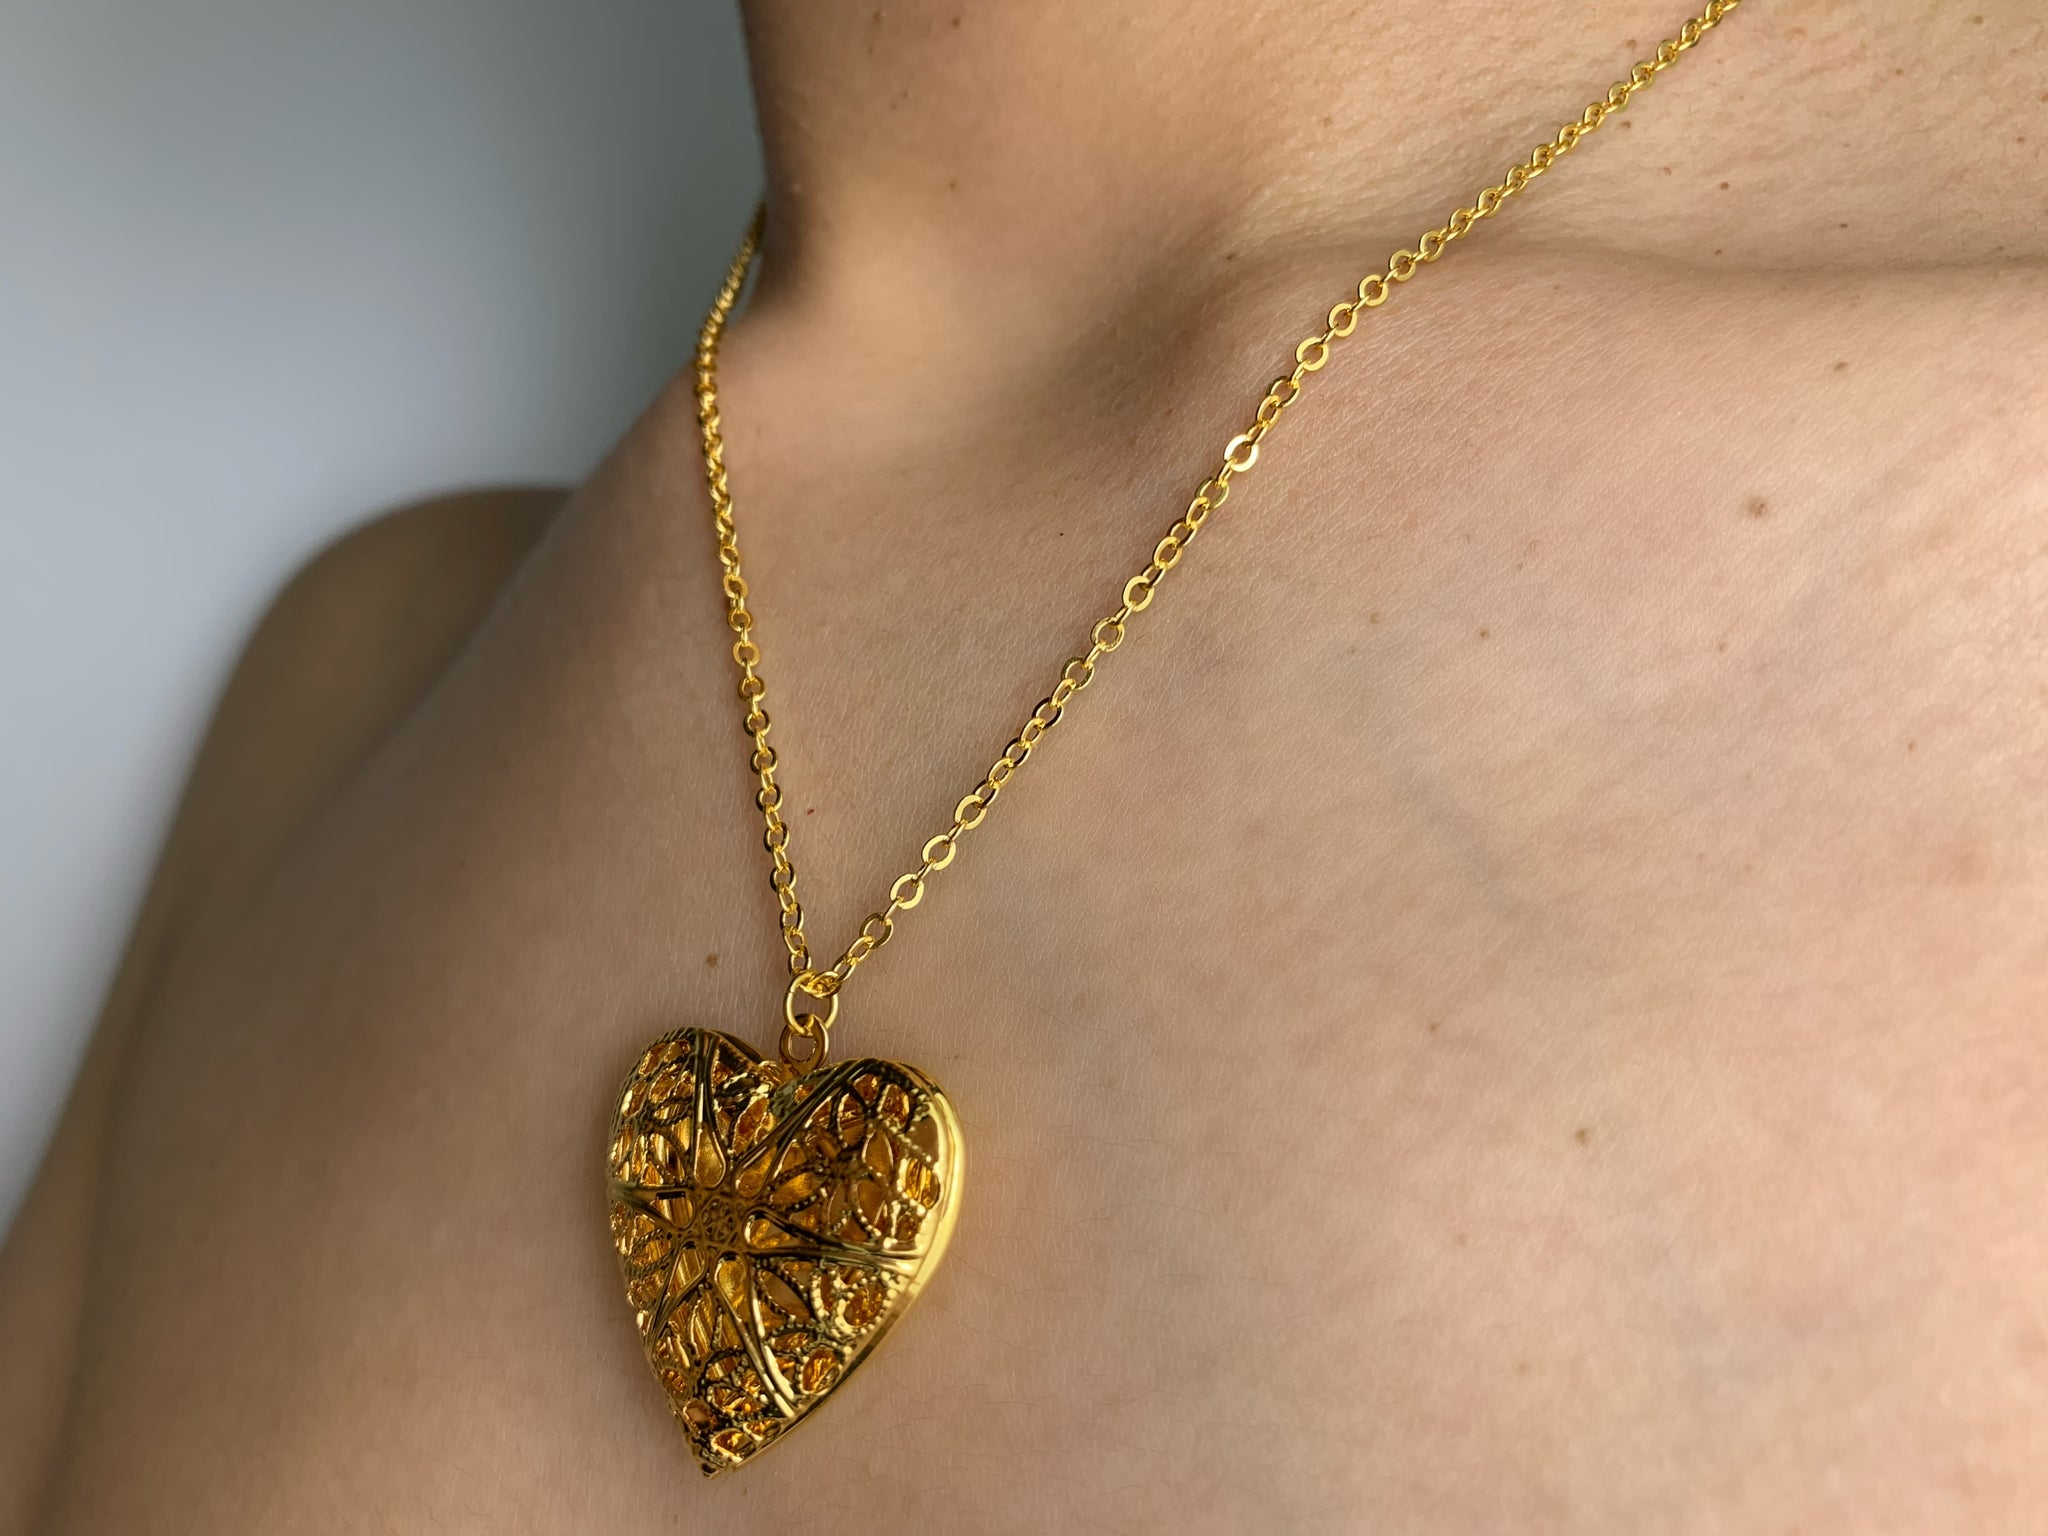 Heart locket, heart chain, heart necklace, heart gold necklace, Locket